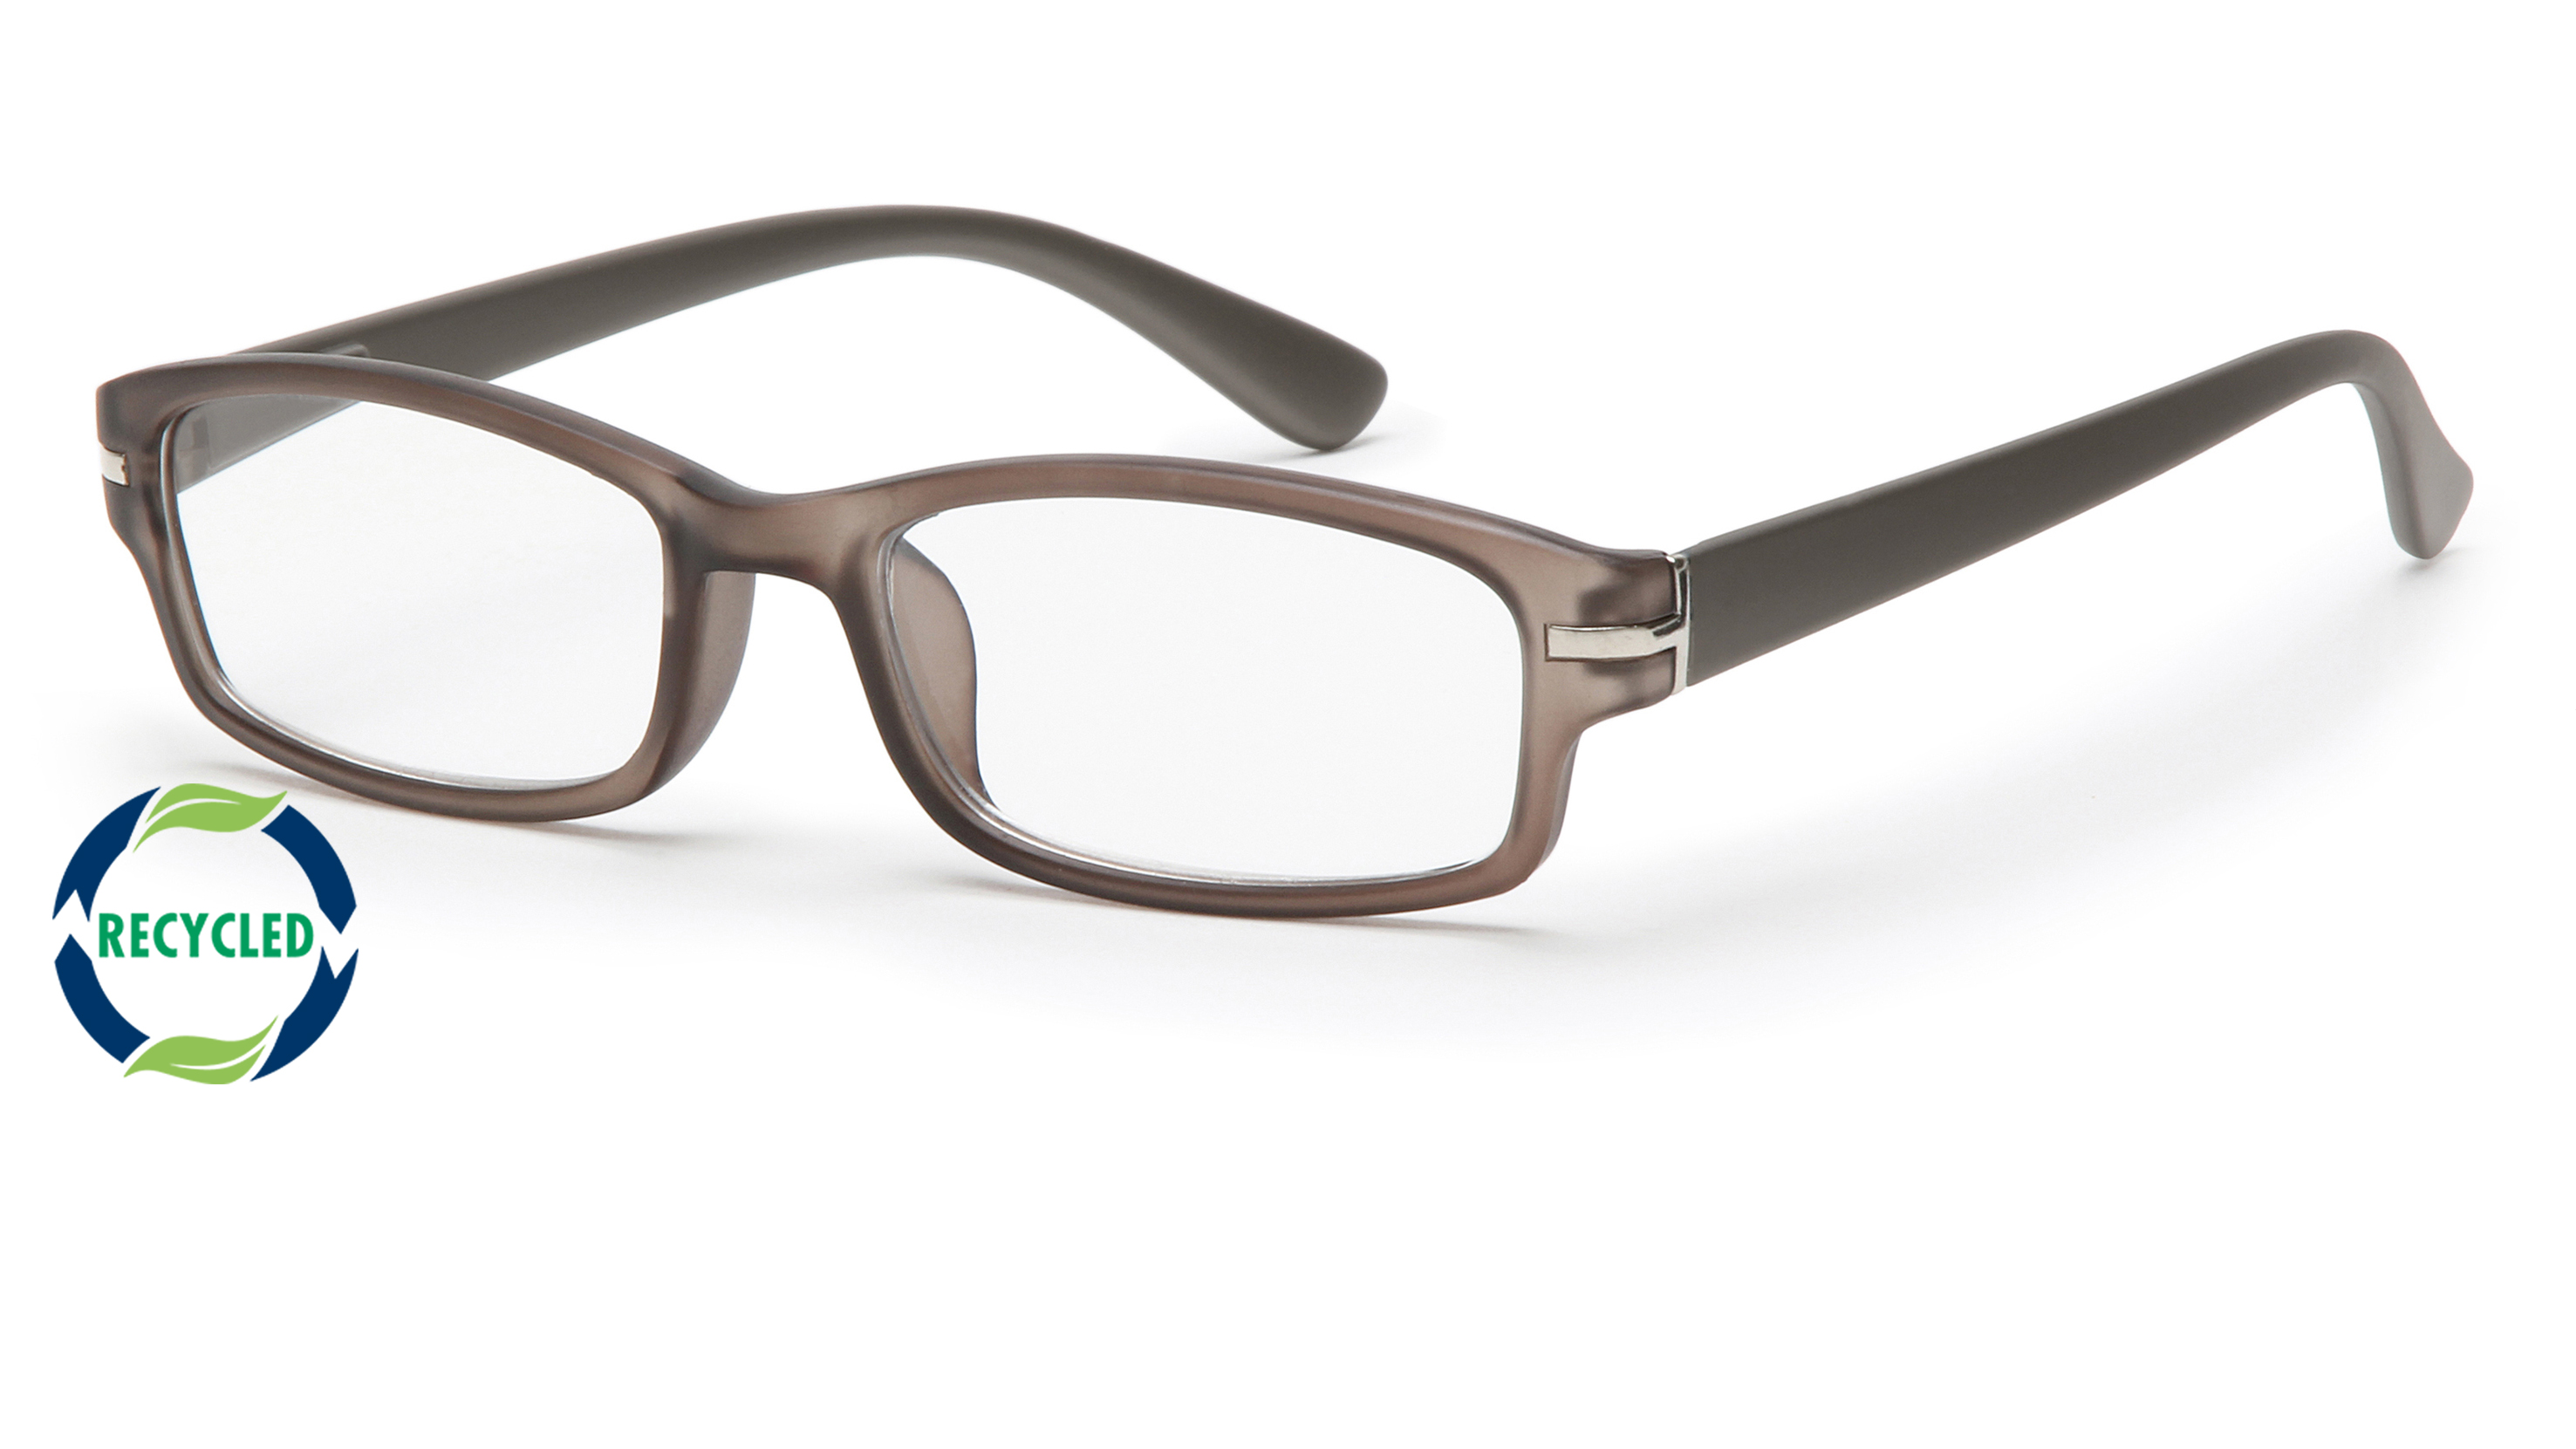 Filtral recycling reading glasses sydney grey